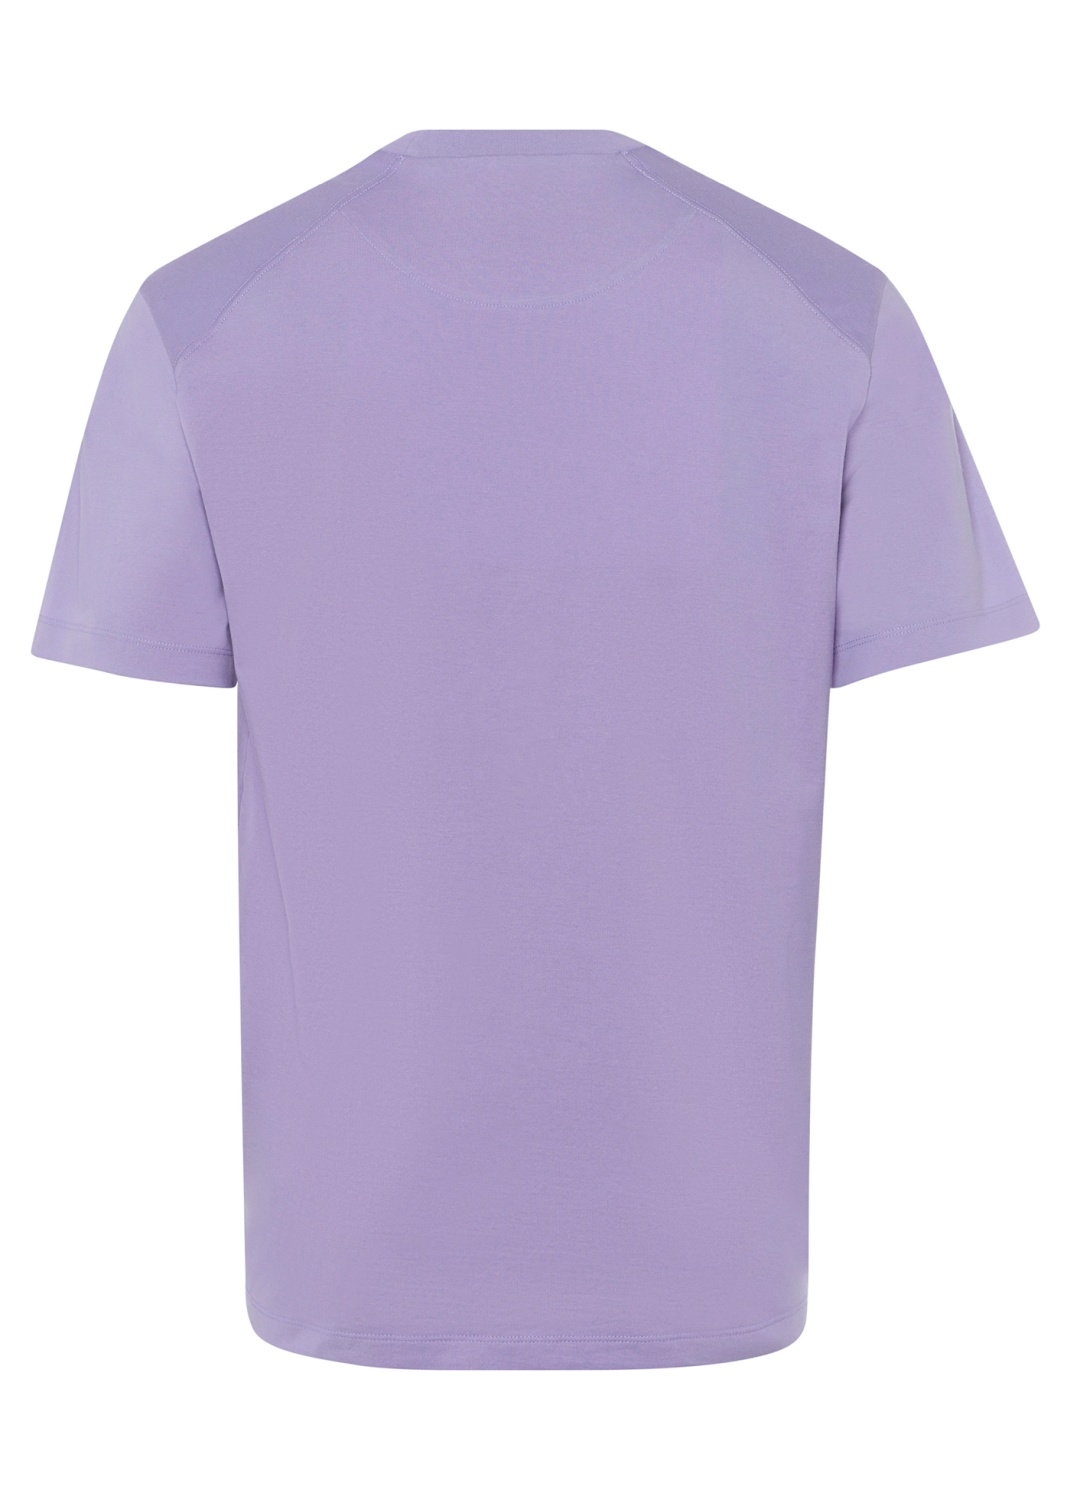 M CL C SS TEE image number 1